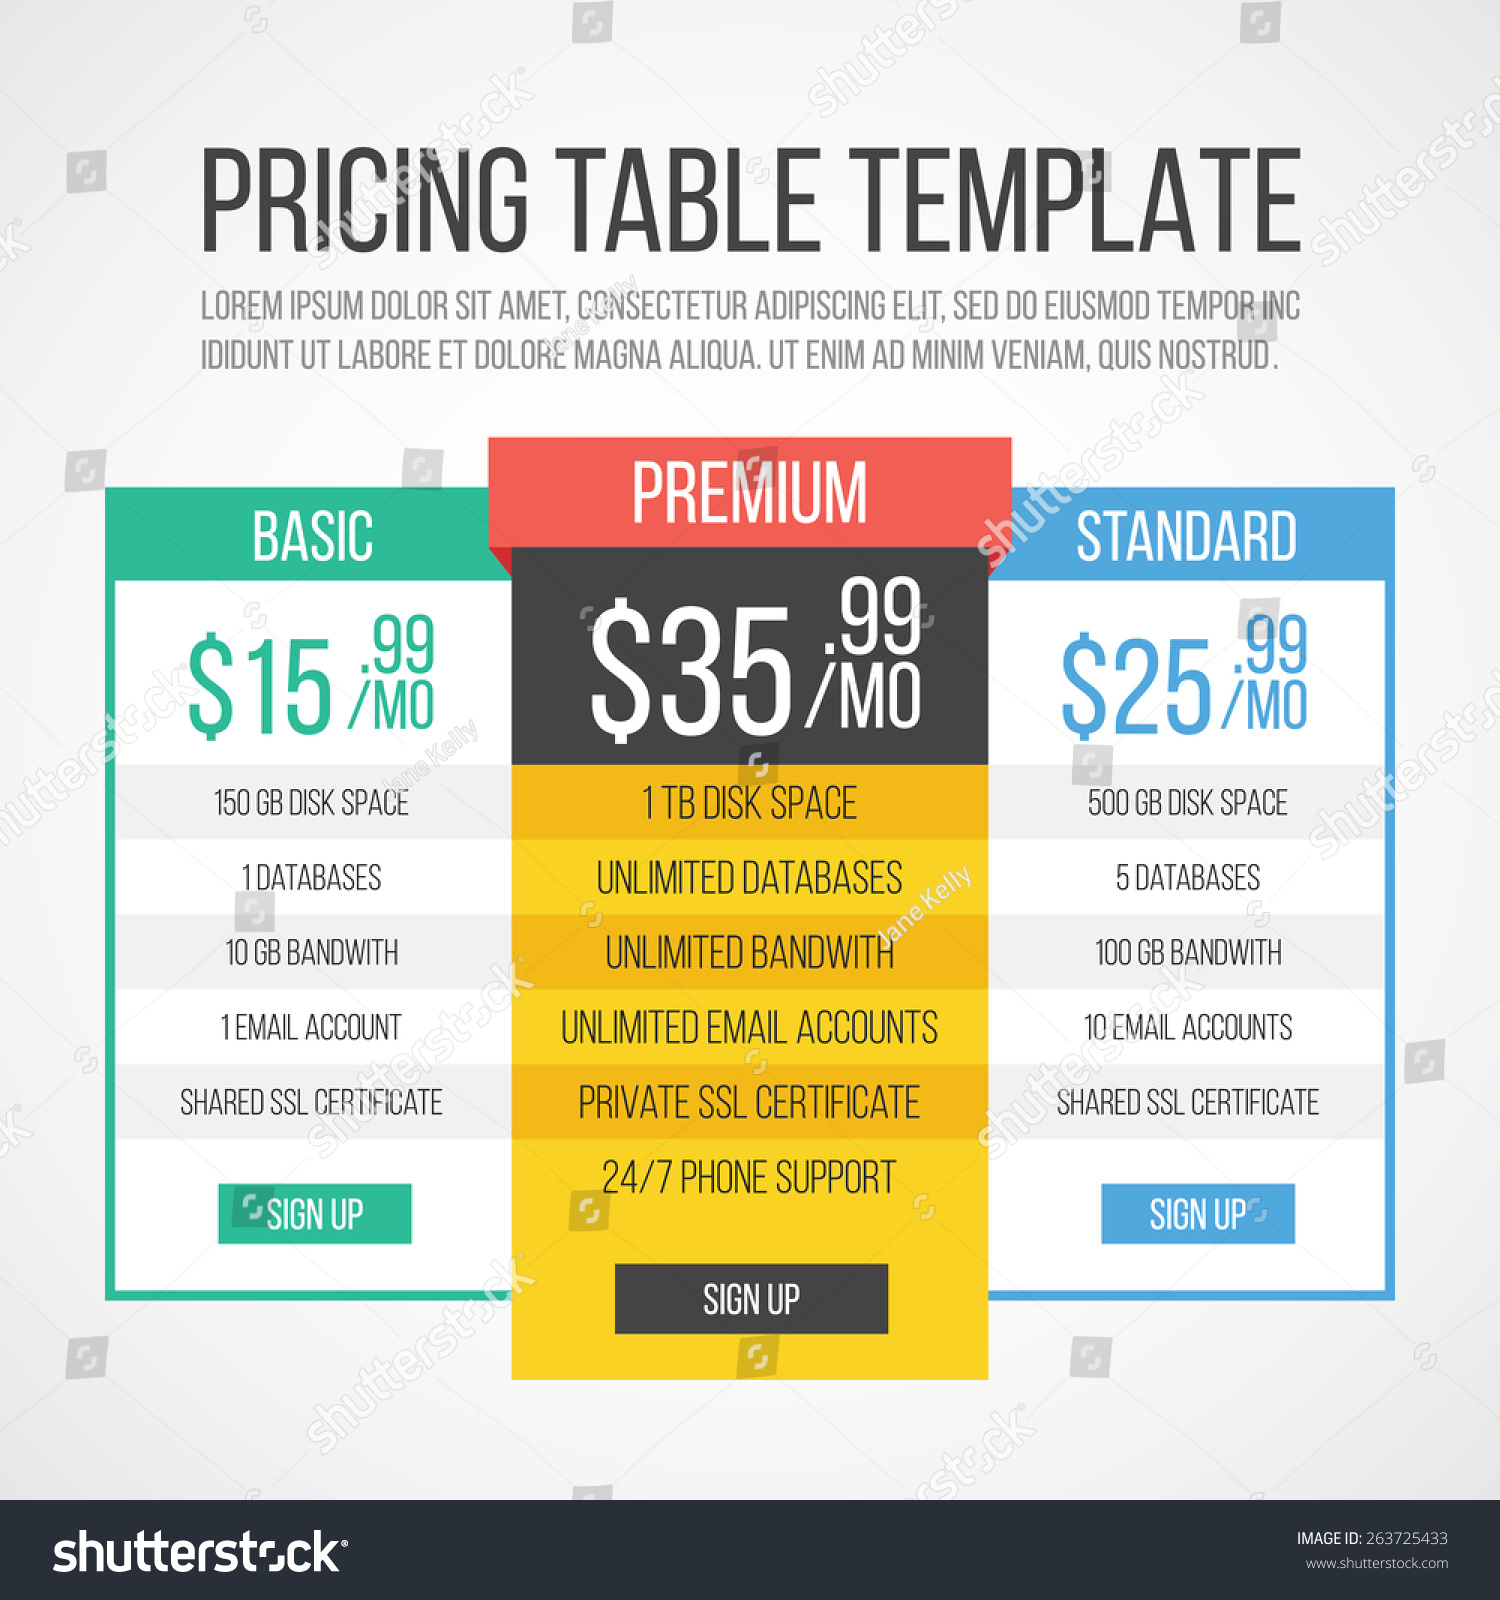 Pricing Table Template Creative Graphic Design Stock Vector Royalty